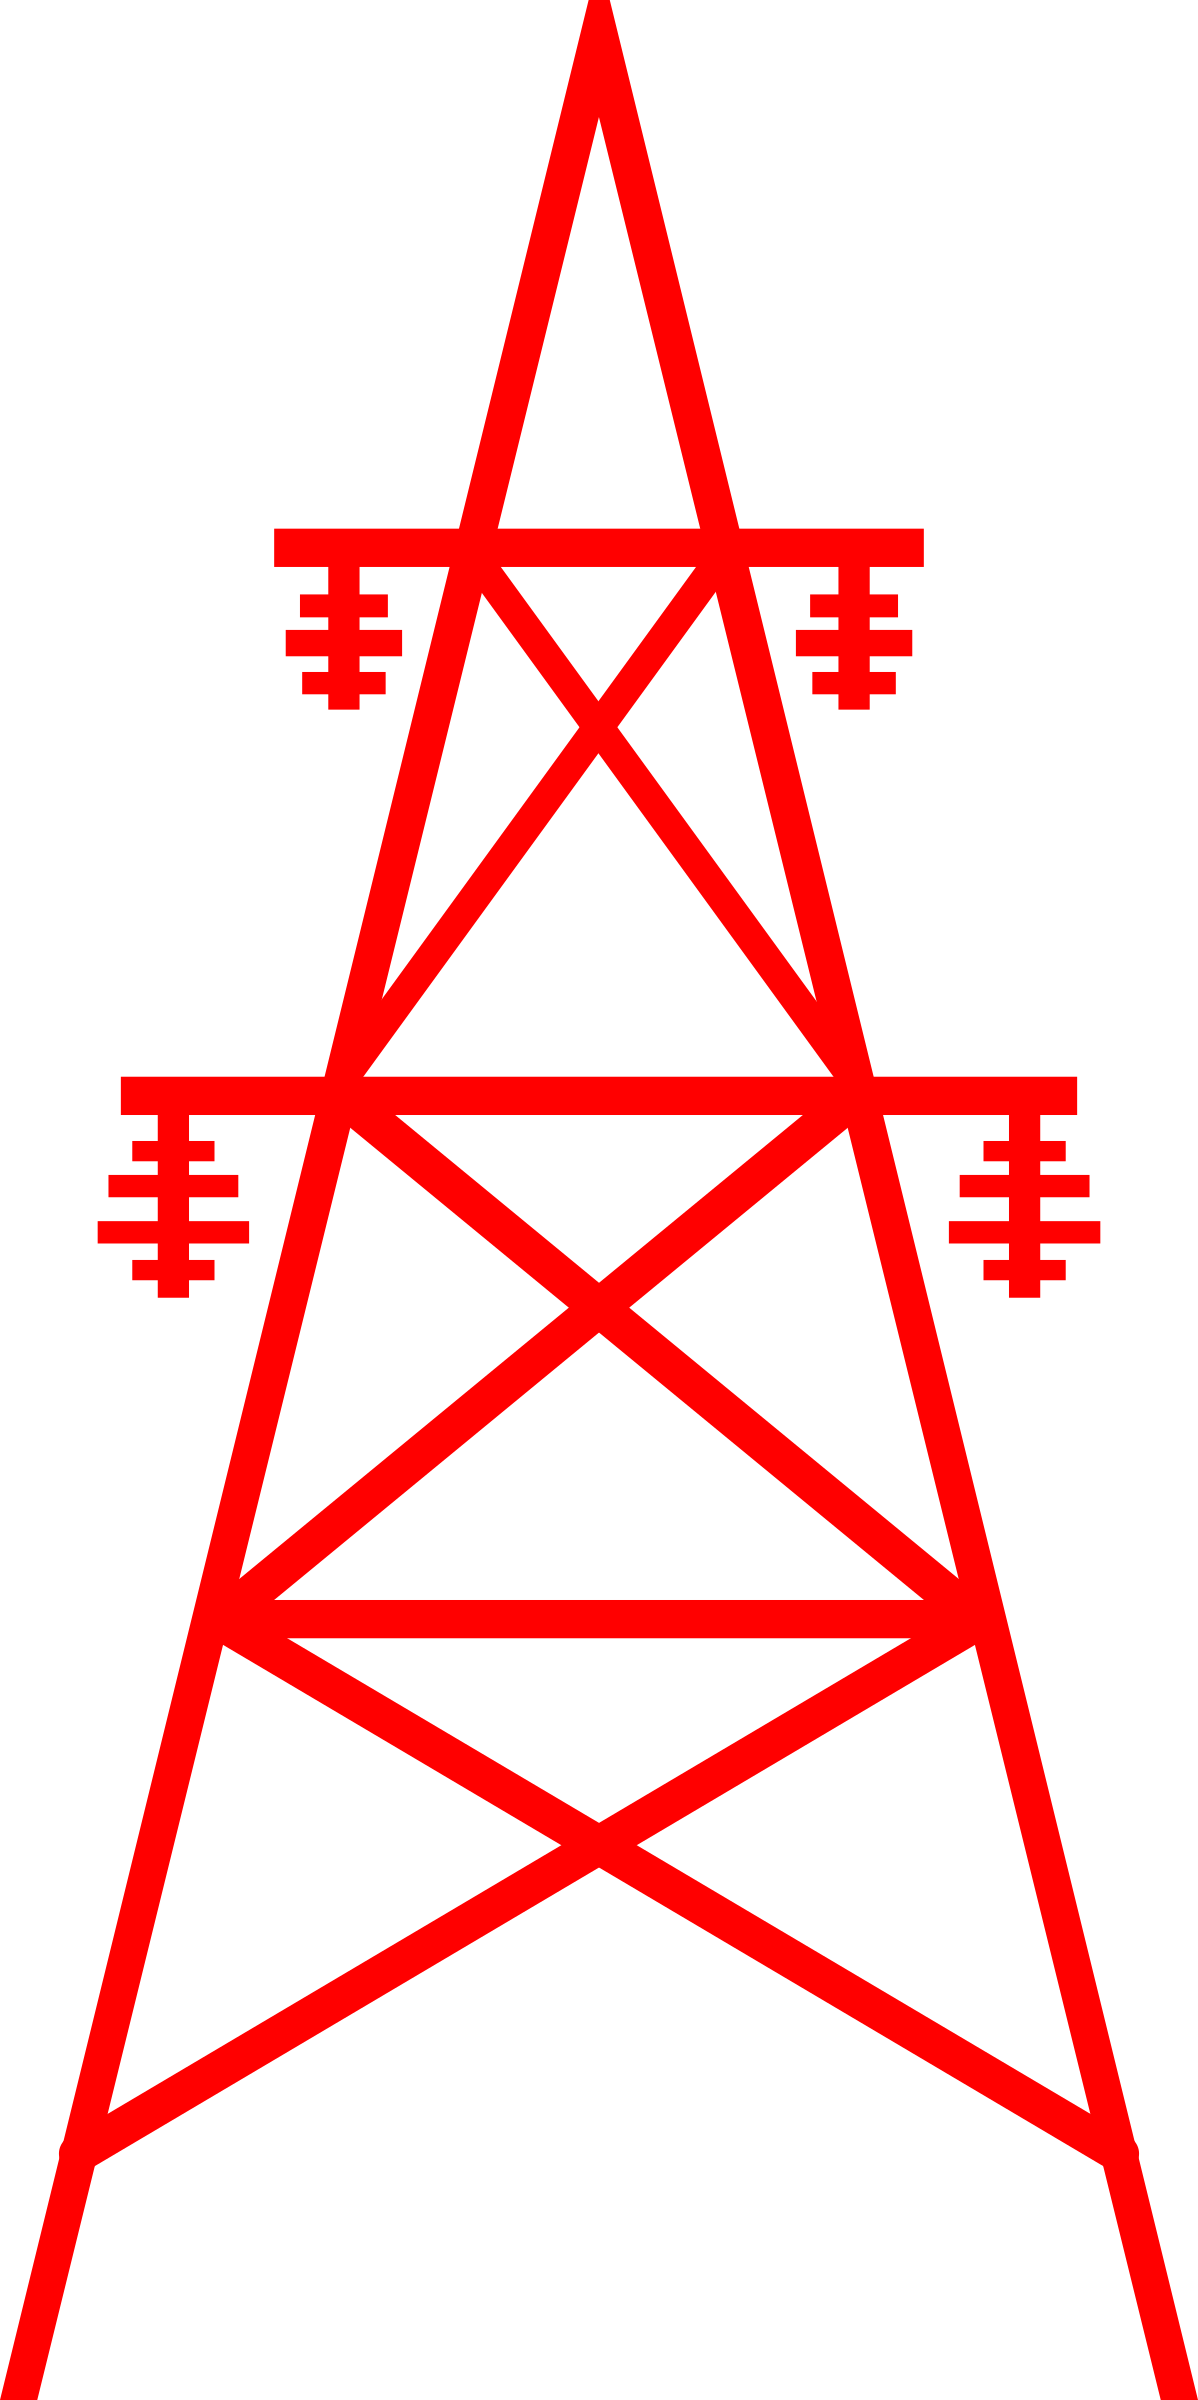 Tower clipart transmission line tower.